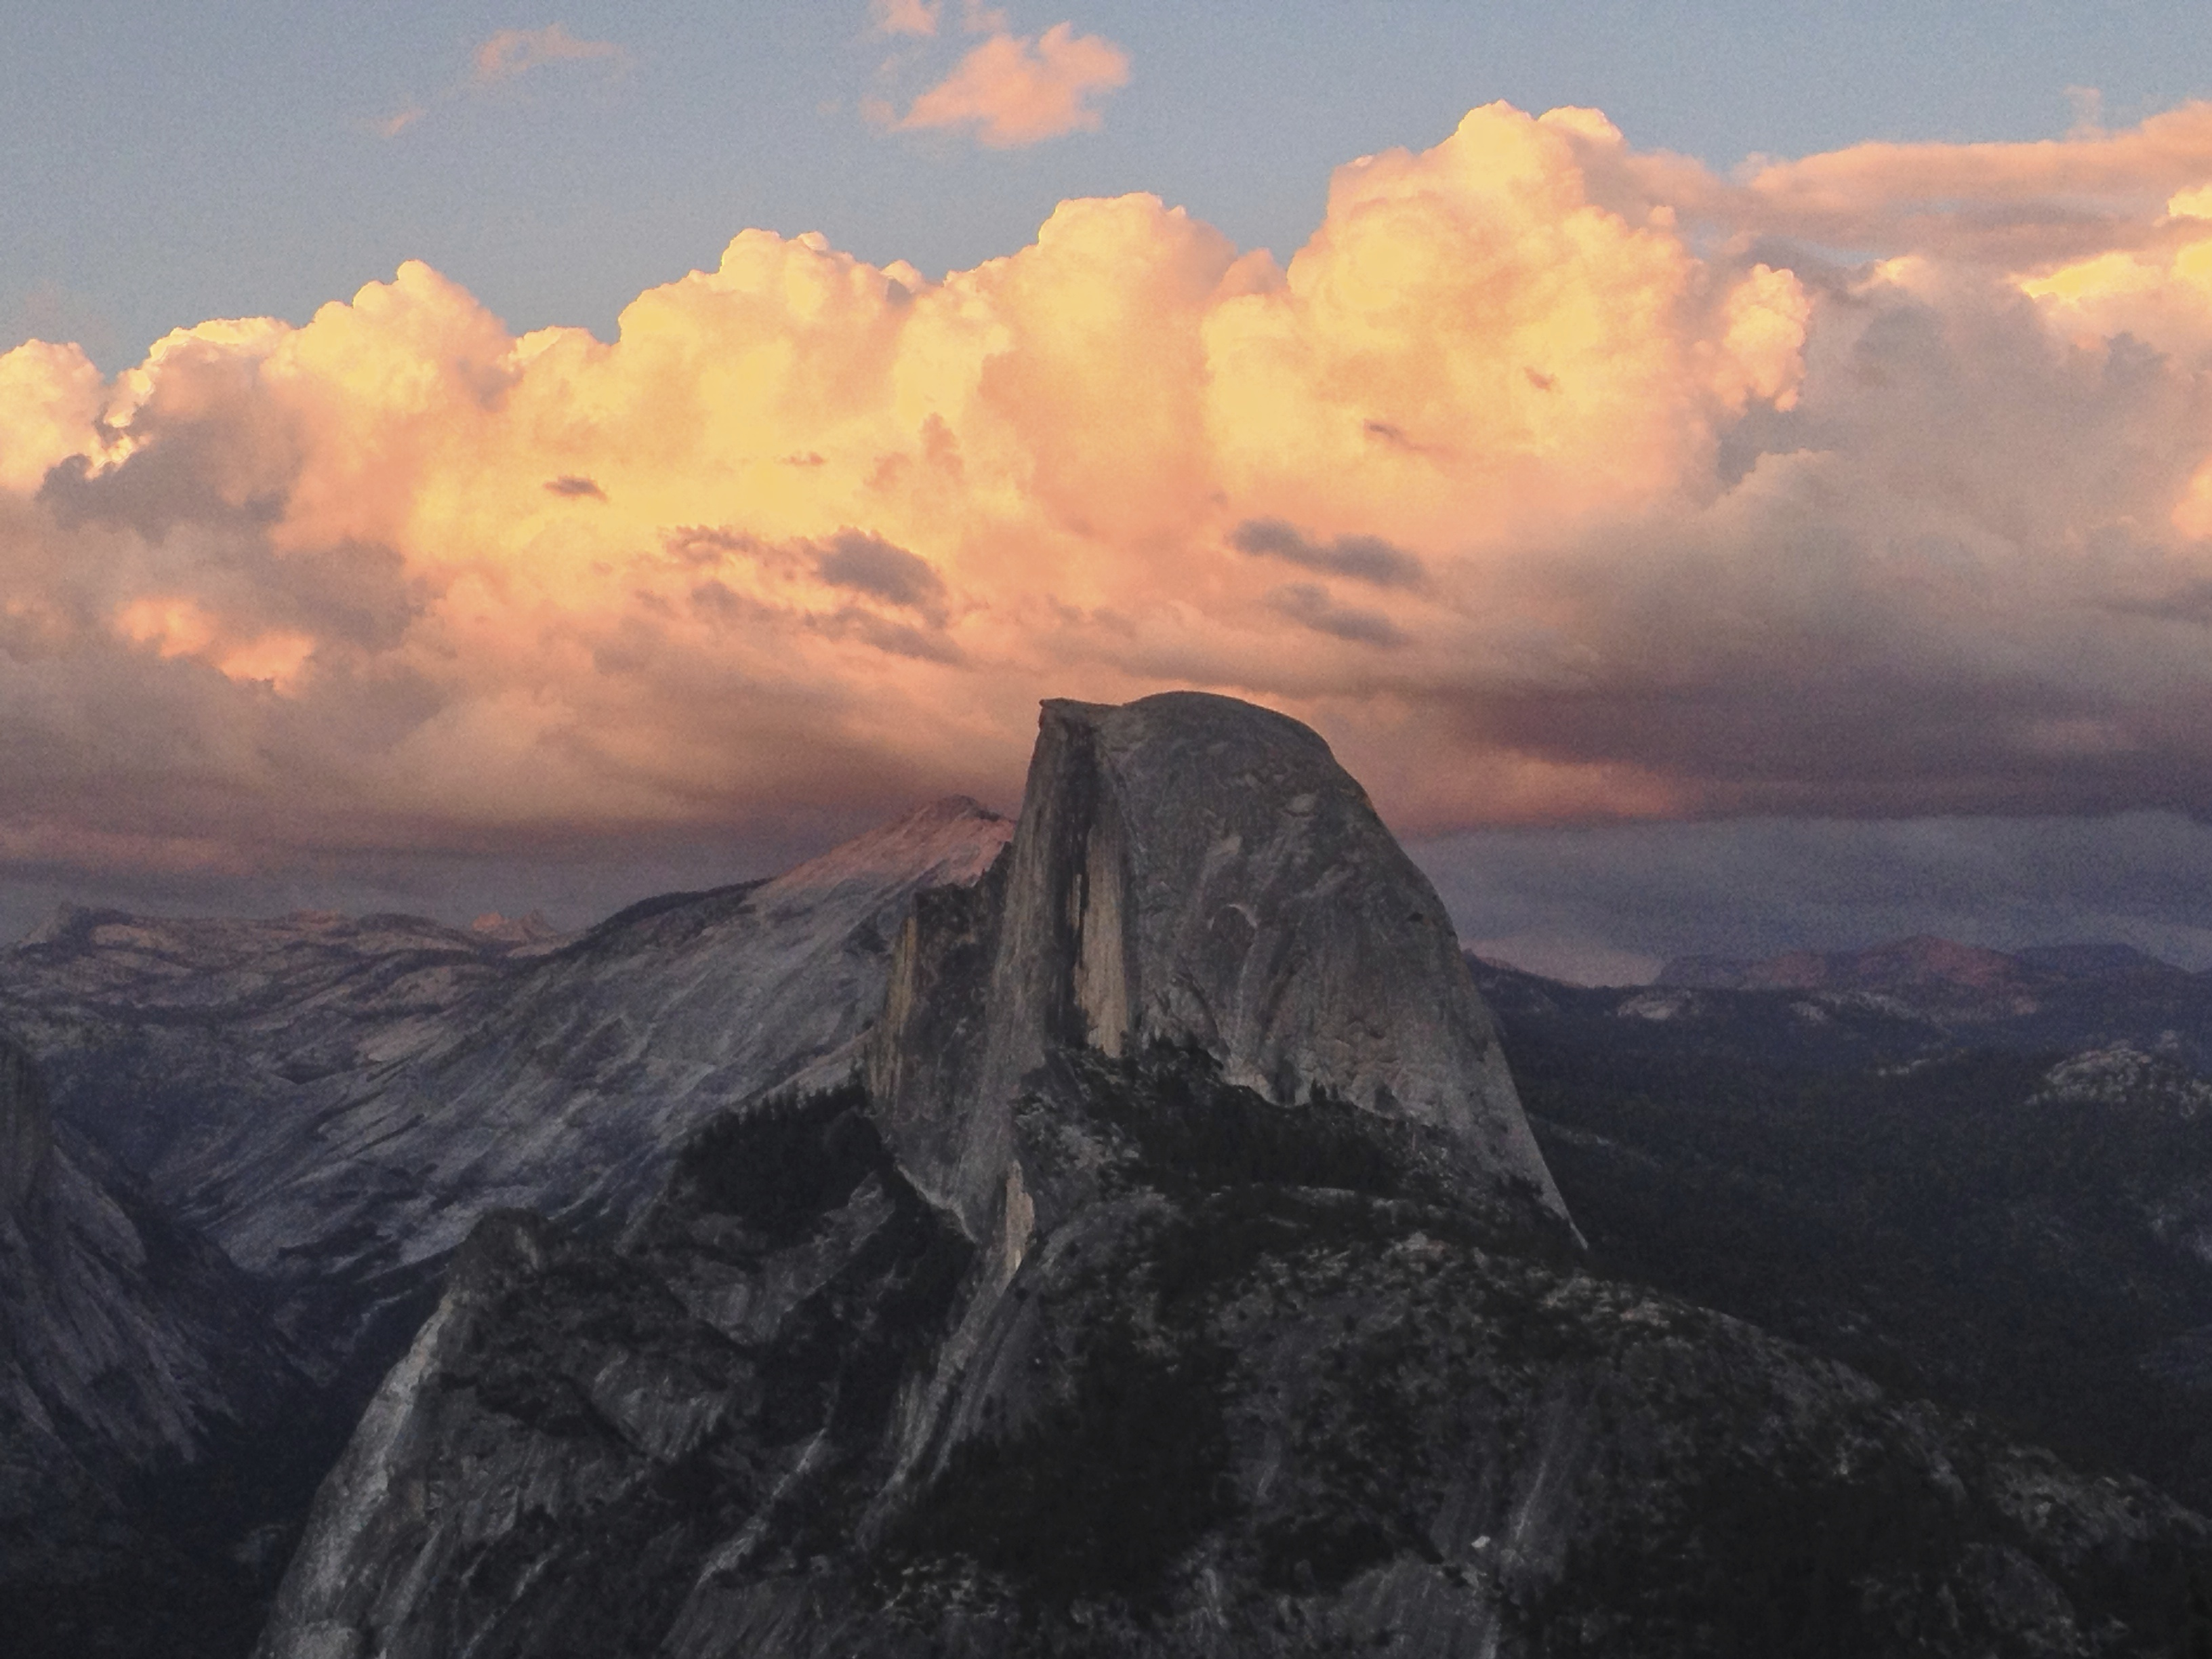 The second photo of Half Dome has better definition on Half Dome. You can see  details on the mountain, as well as, having the sky full of sunset colors.